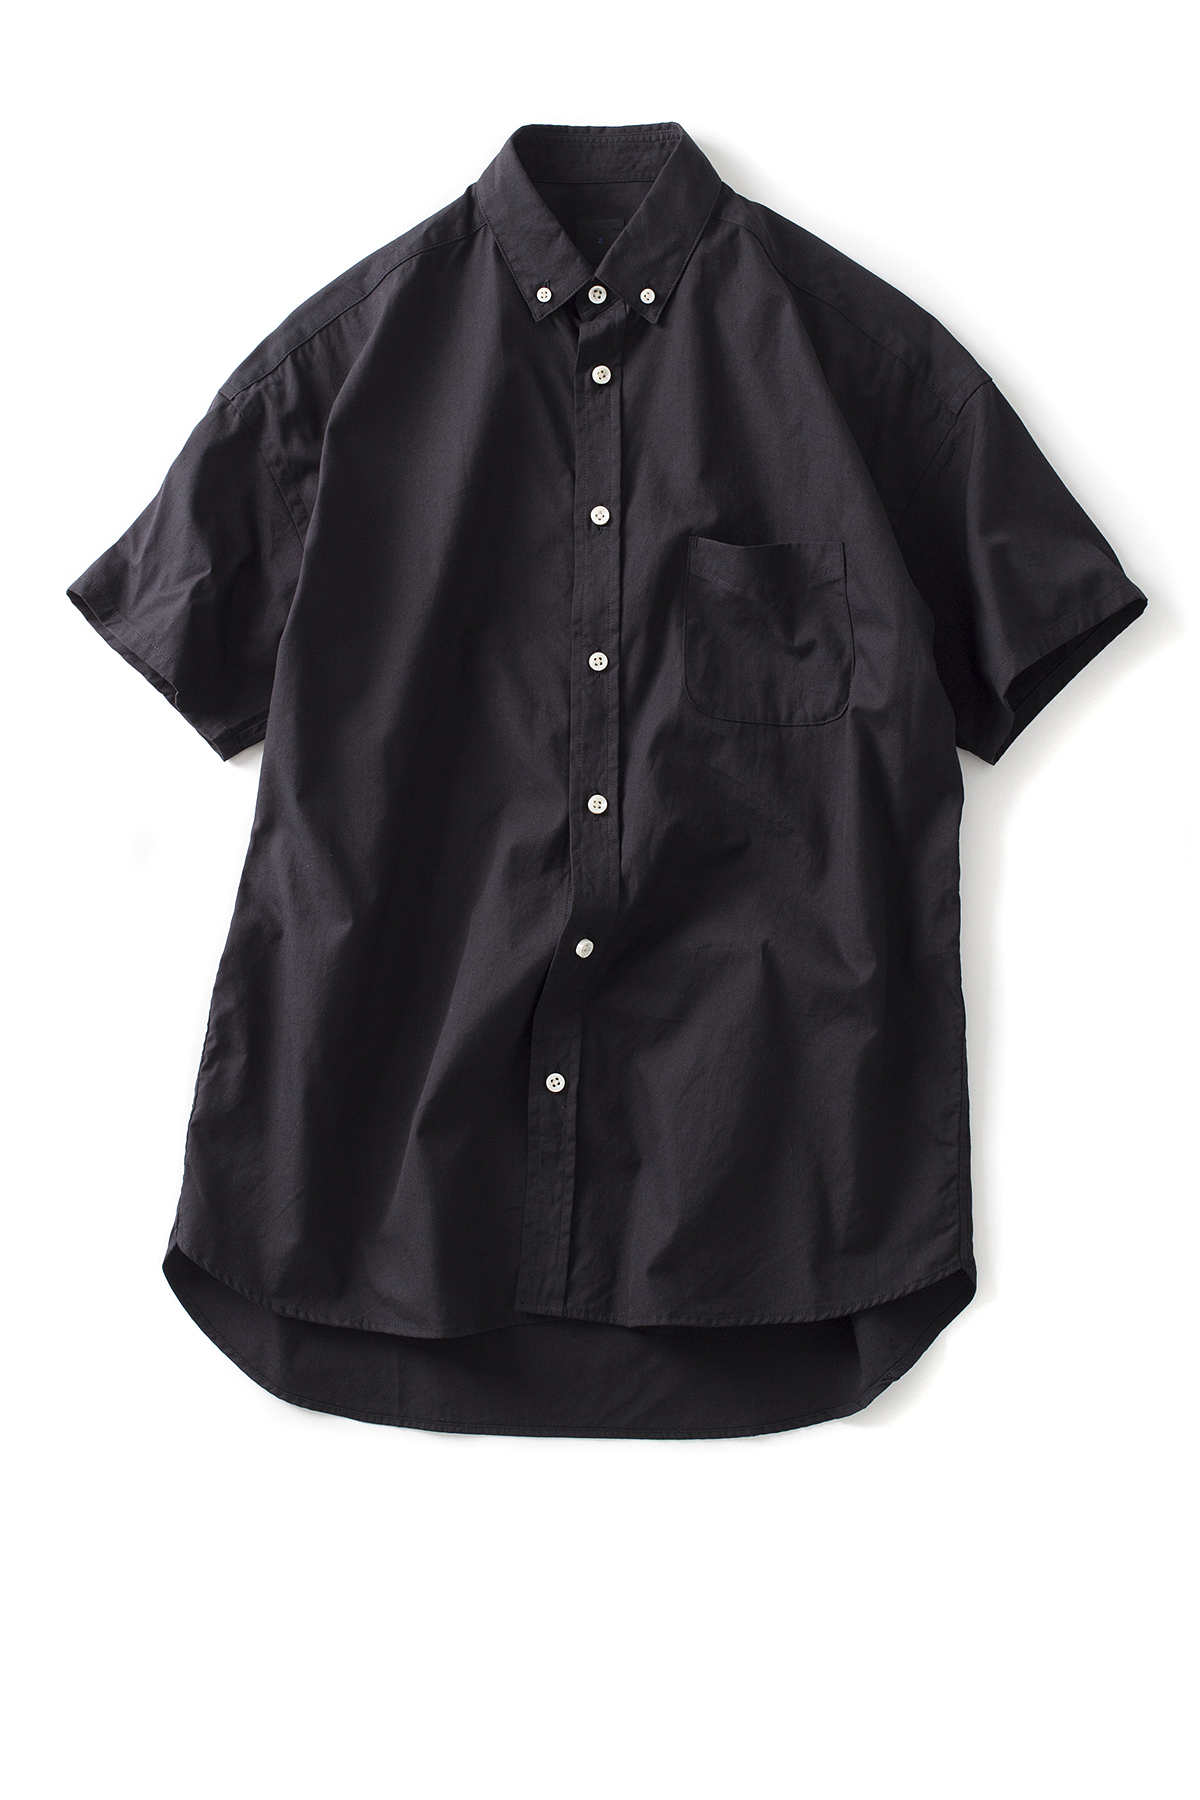 maillot : Soft OX Relax S/S BD Shirt (Black)